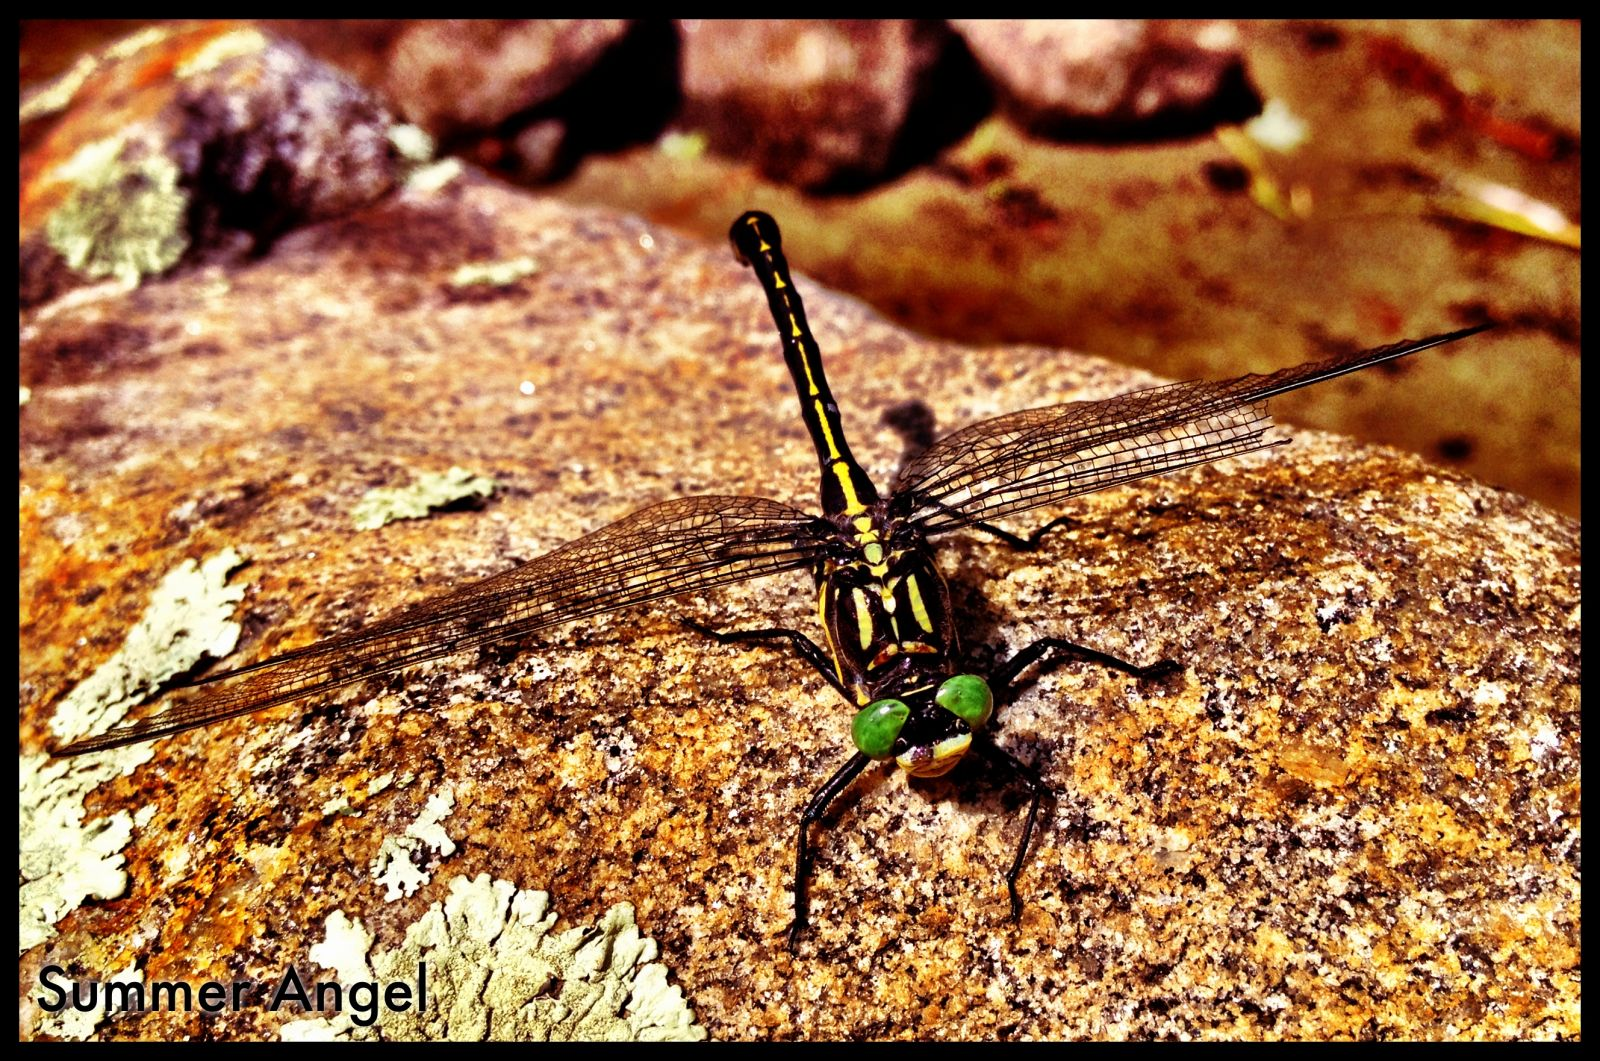 Big Honkin' Dragonfly